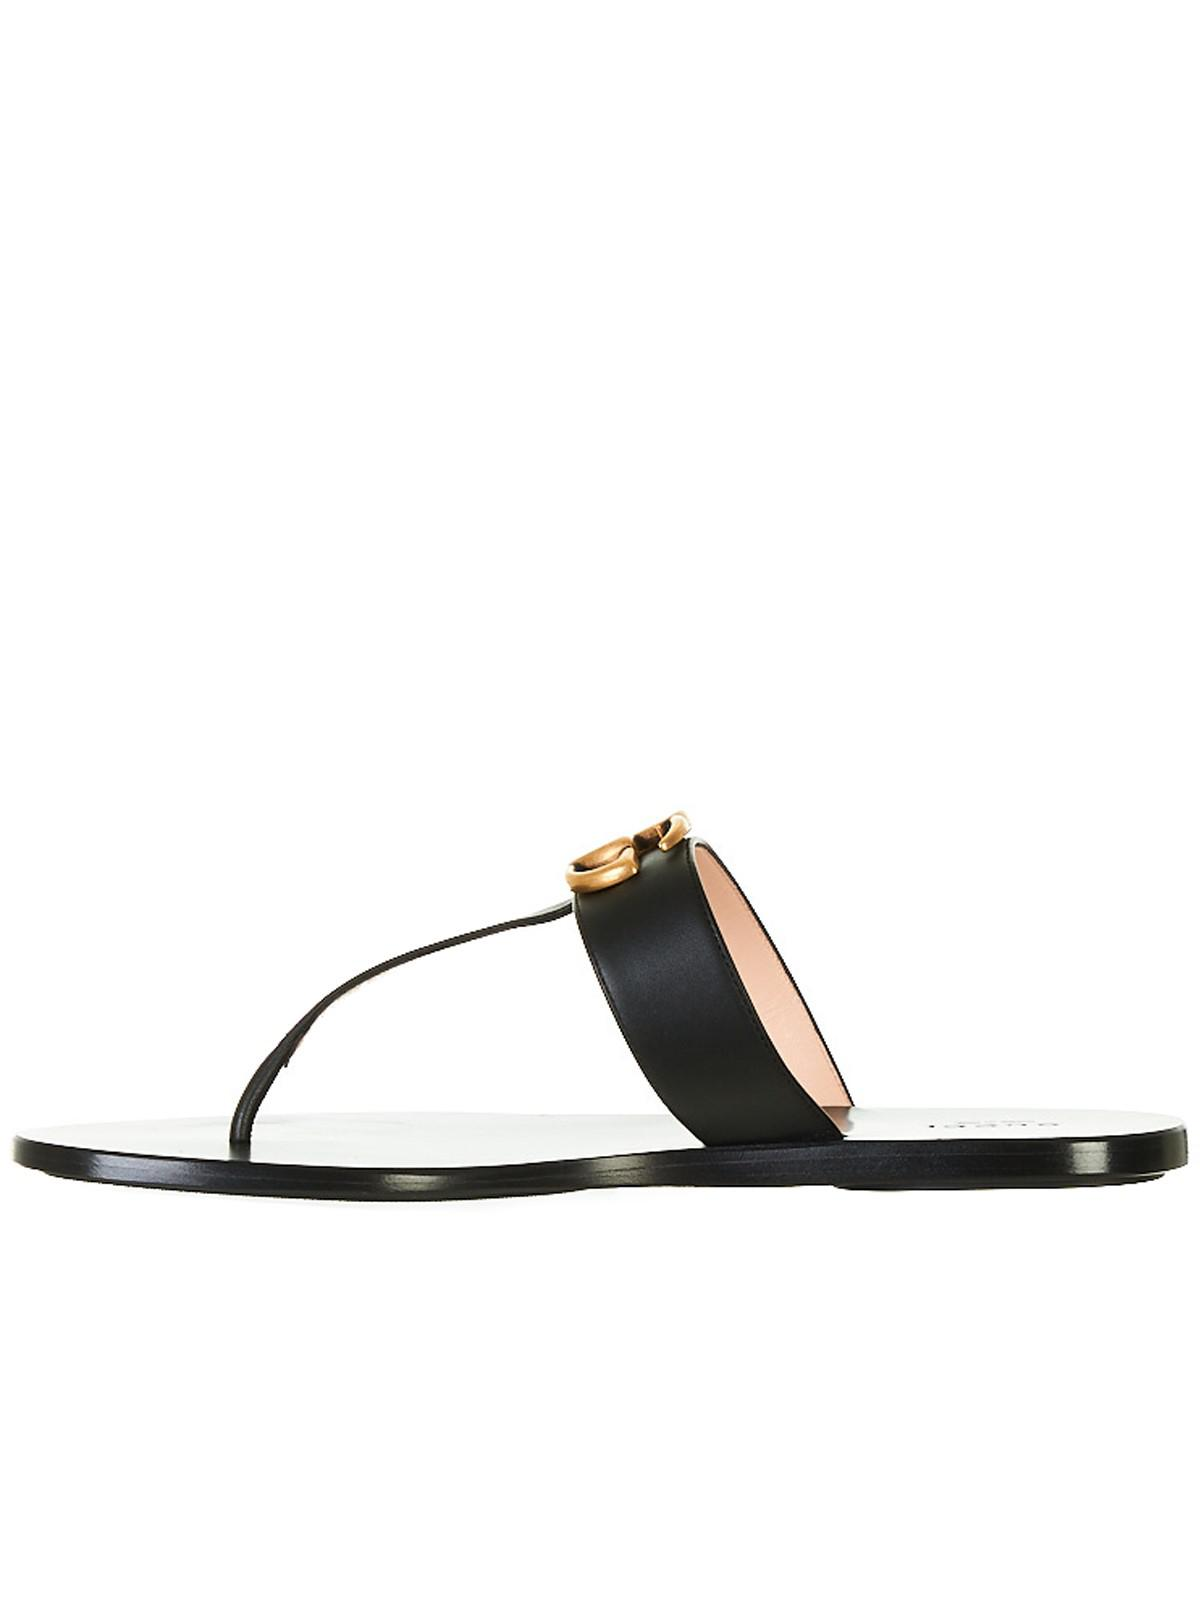 256ab60947e10d Lyst - Gucci Black Flip-flops in Black - Save 20%